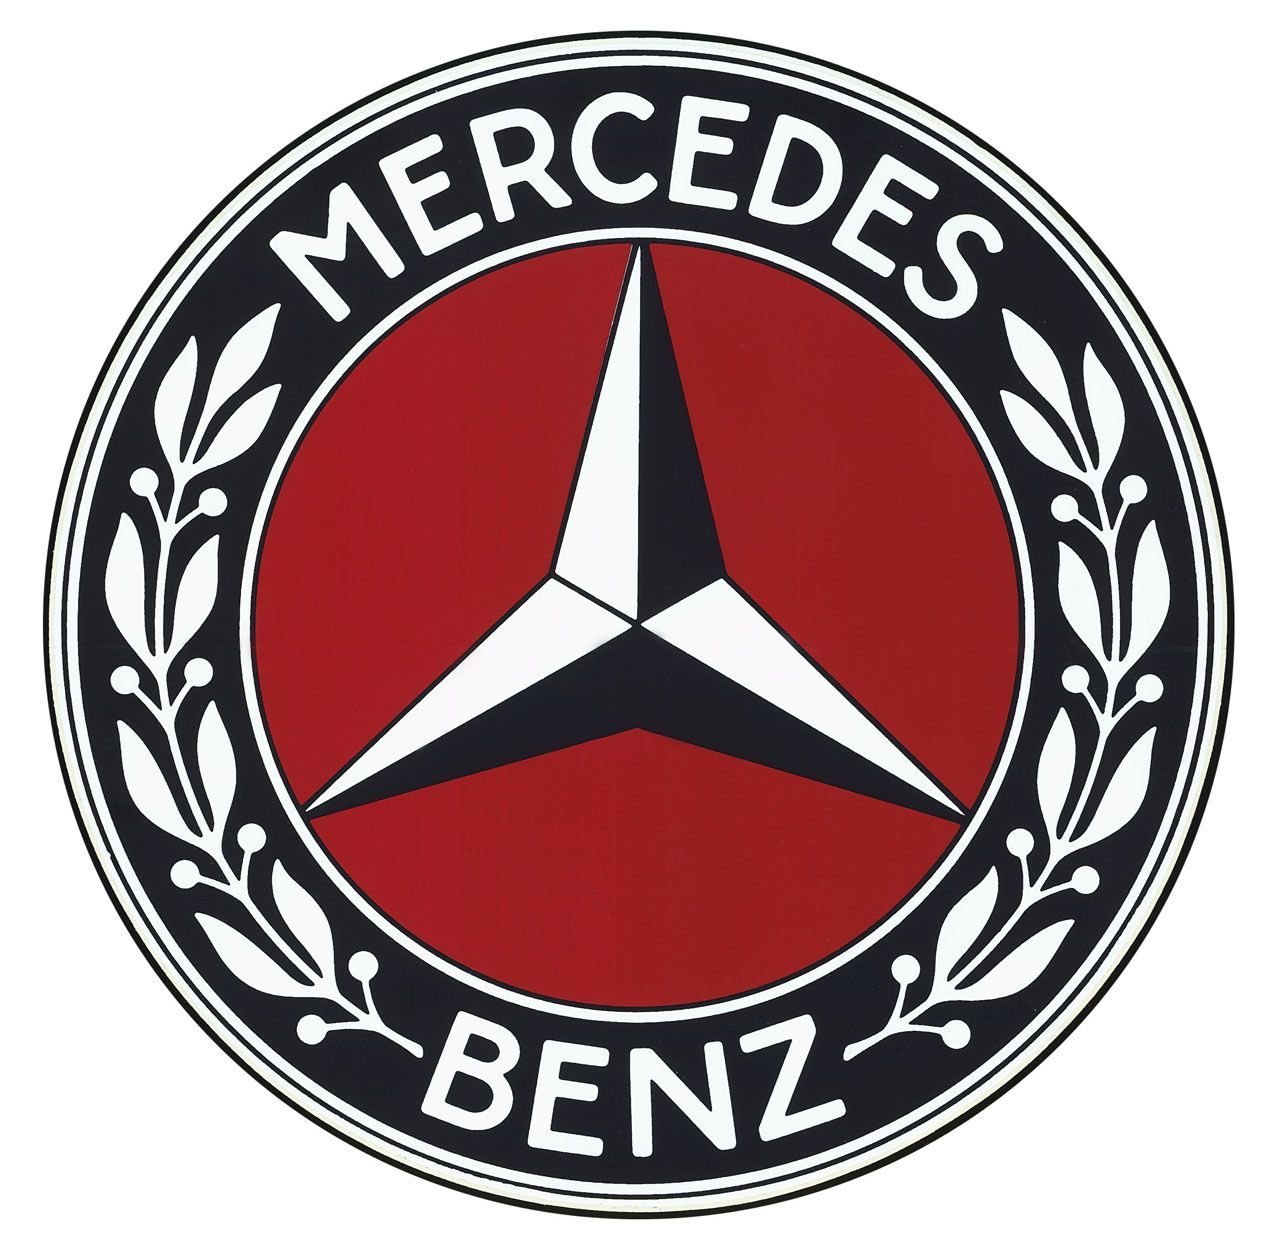 The Origins Of The Mercedes Benz 3 Pointed Star Logo Mercedes Logo Mercedes Benz Logo Daimler Benz